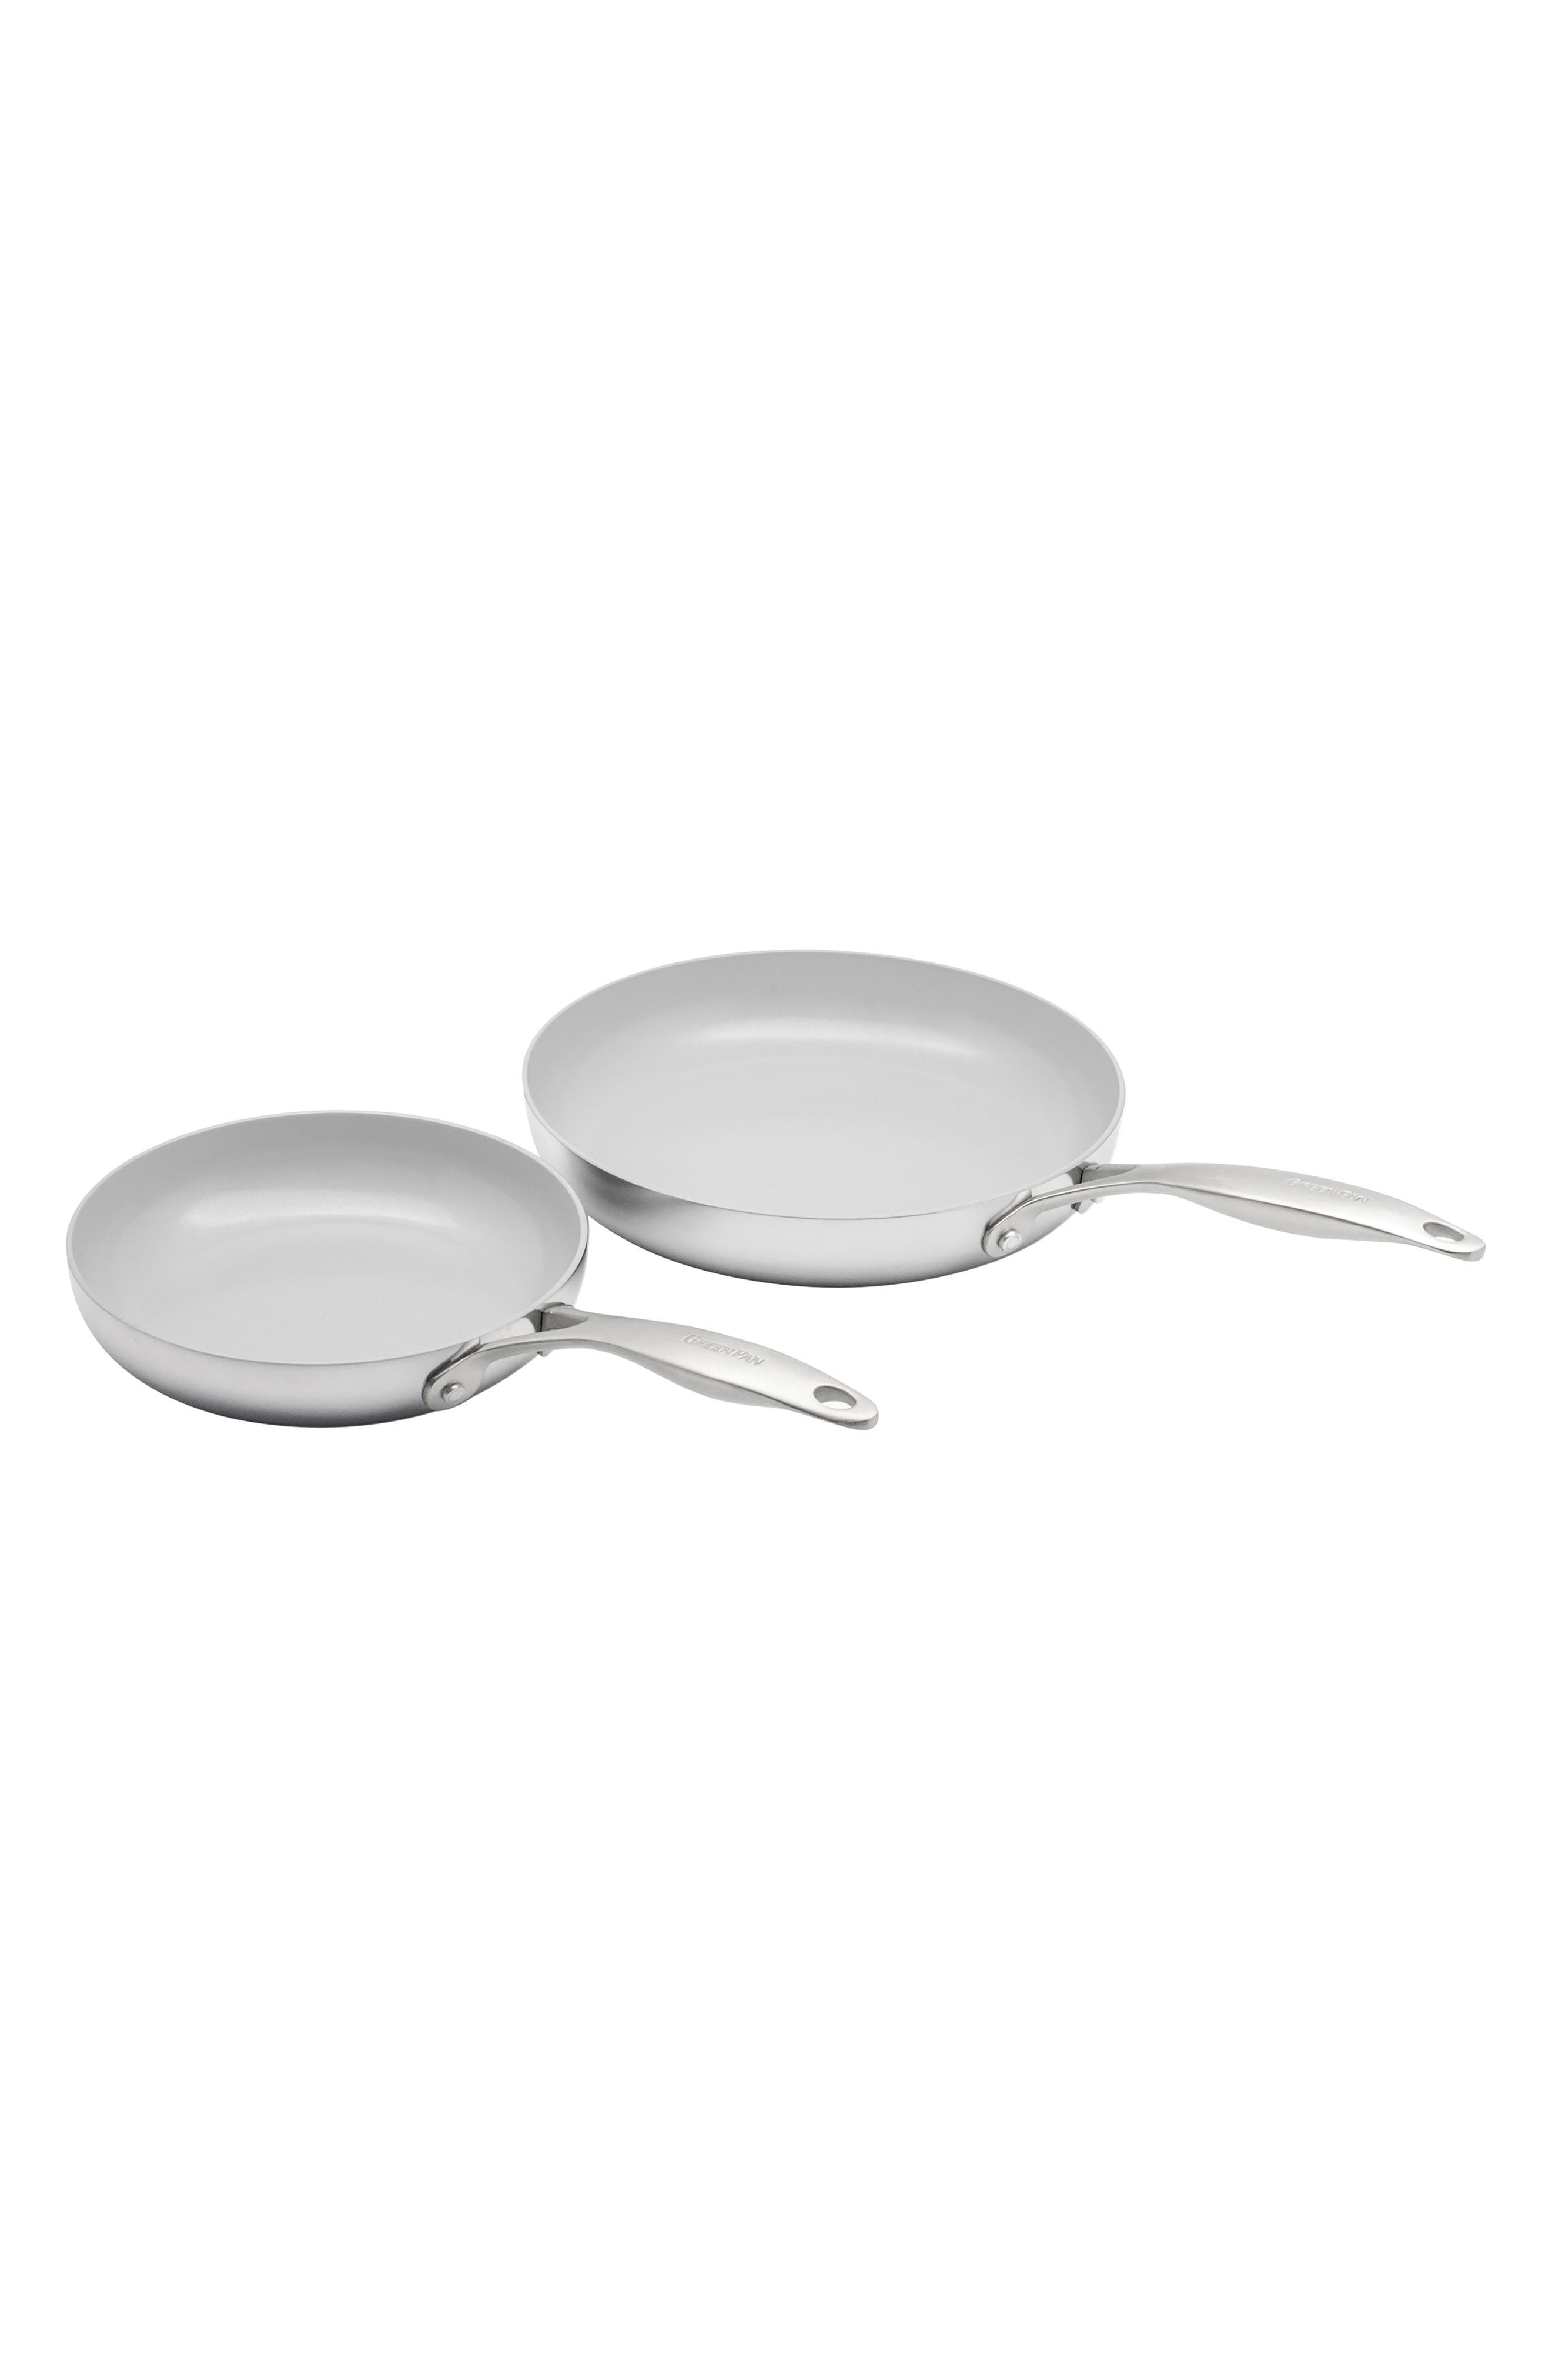 Venice Pro 8-Inch & 10-Inch Multilayer Stainless Steel Ceramic Nonstick Frying Pan Set,                             Main thumbnail 1, color,                             Stainless Steel